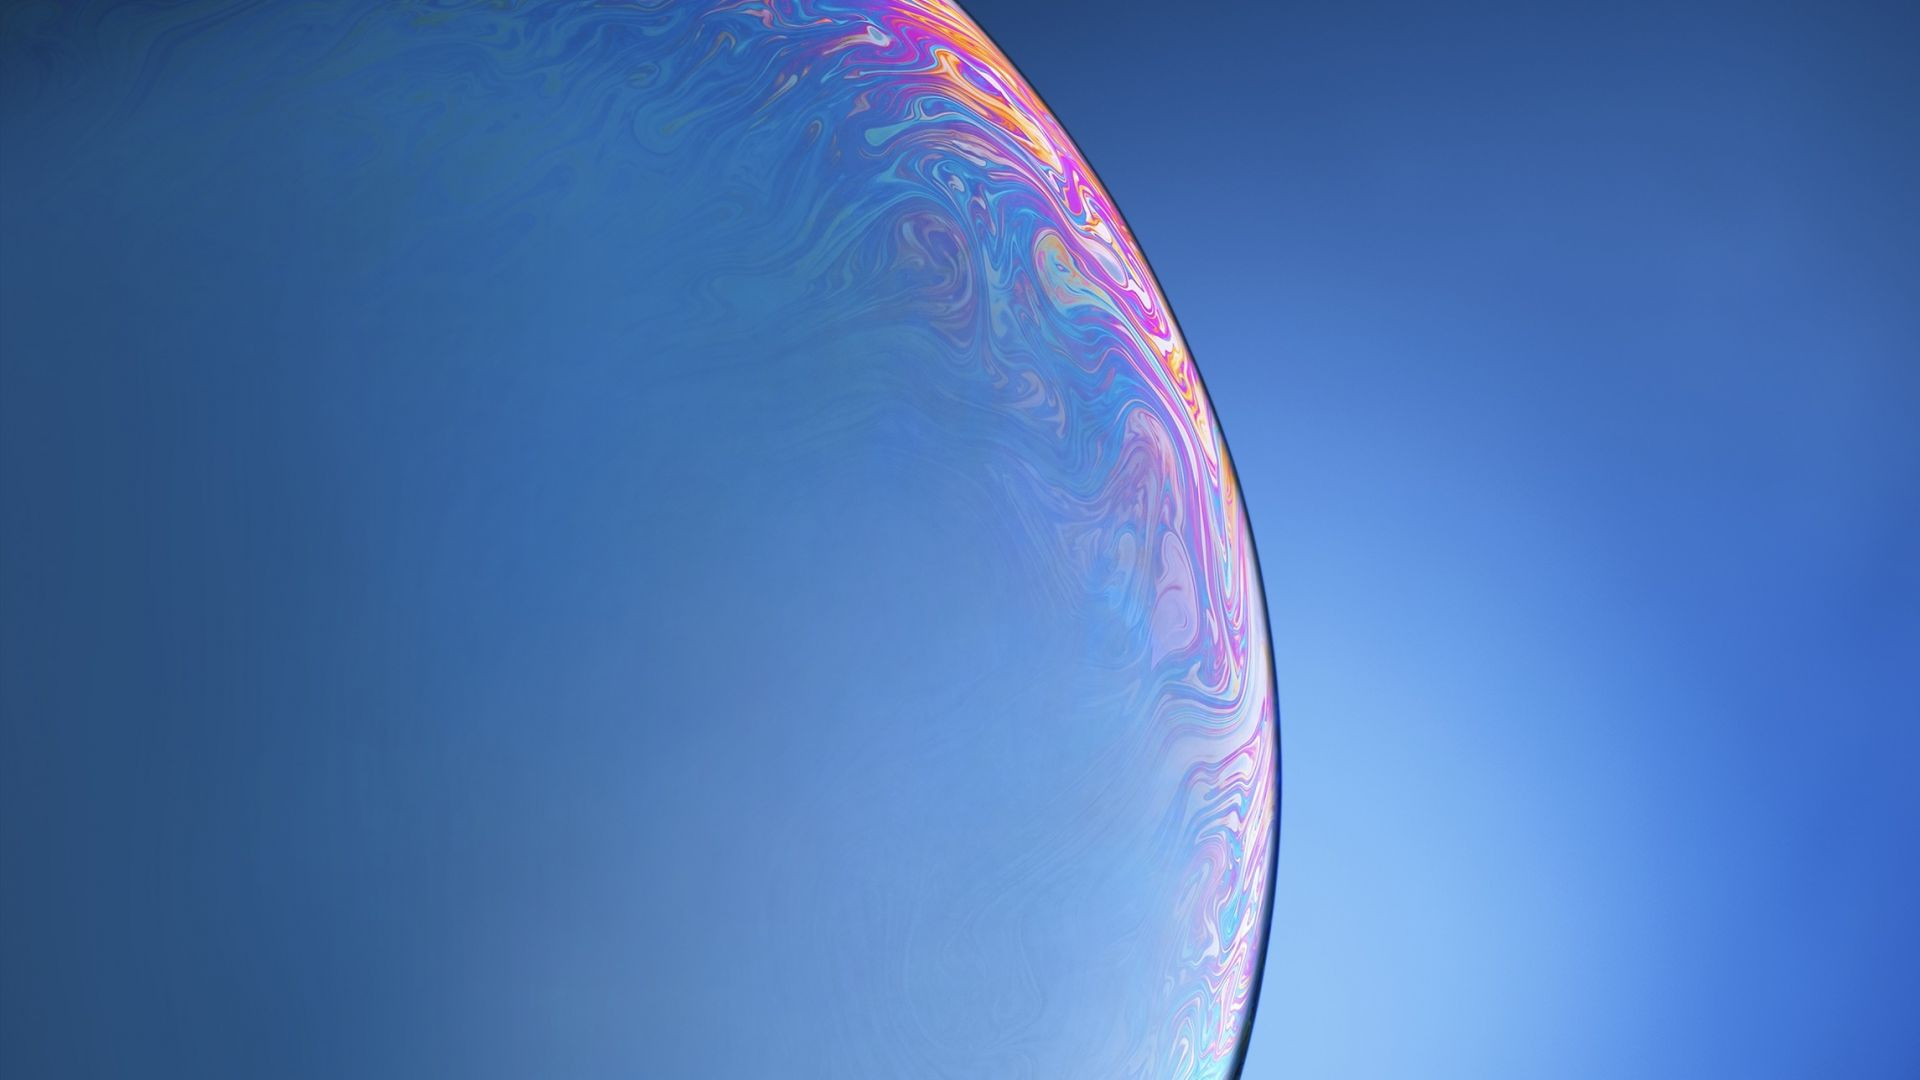 Wallpaper Iphone Xr Iphone Xs Ios 12 Os 20380